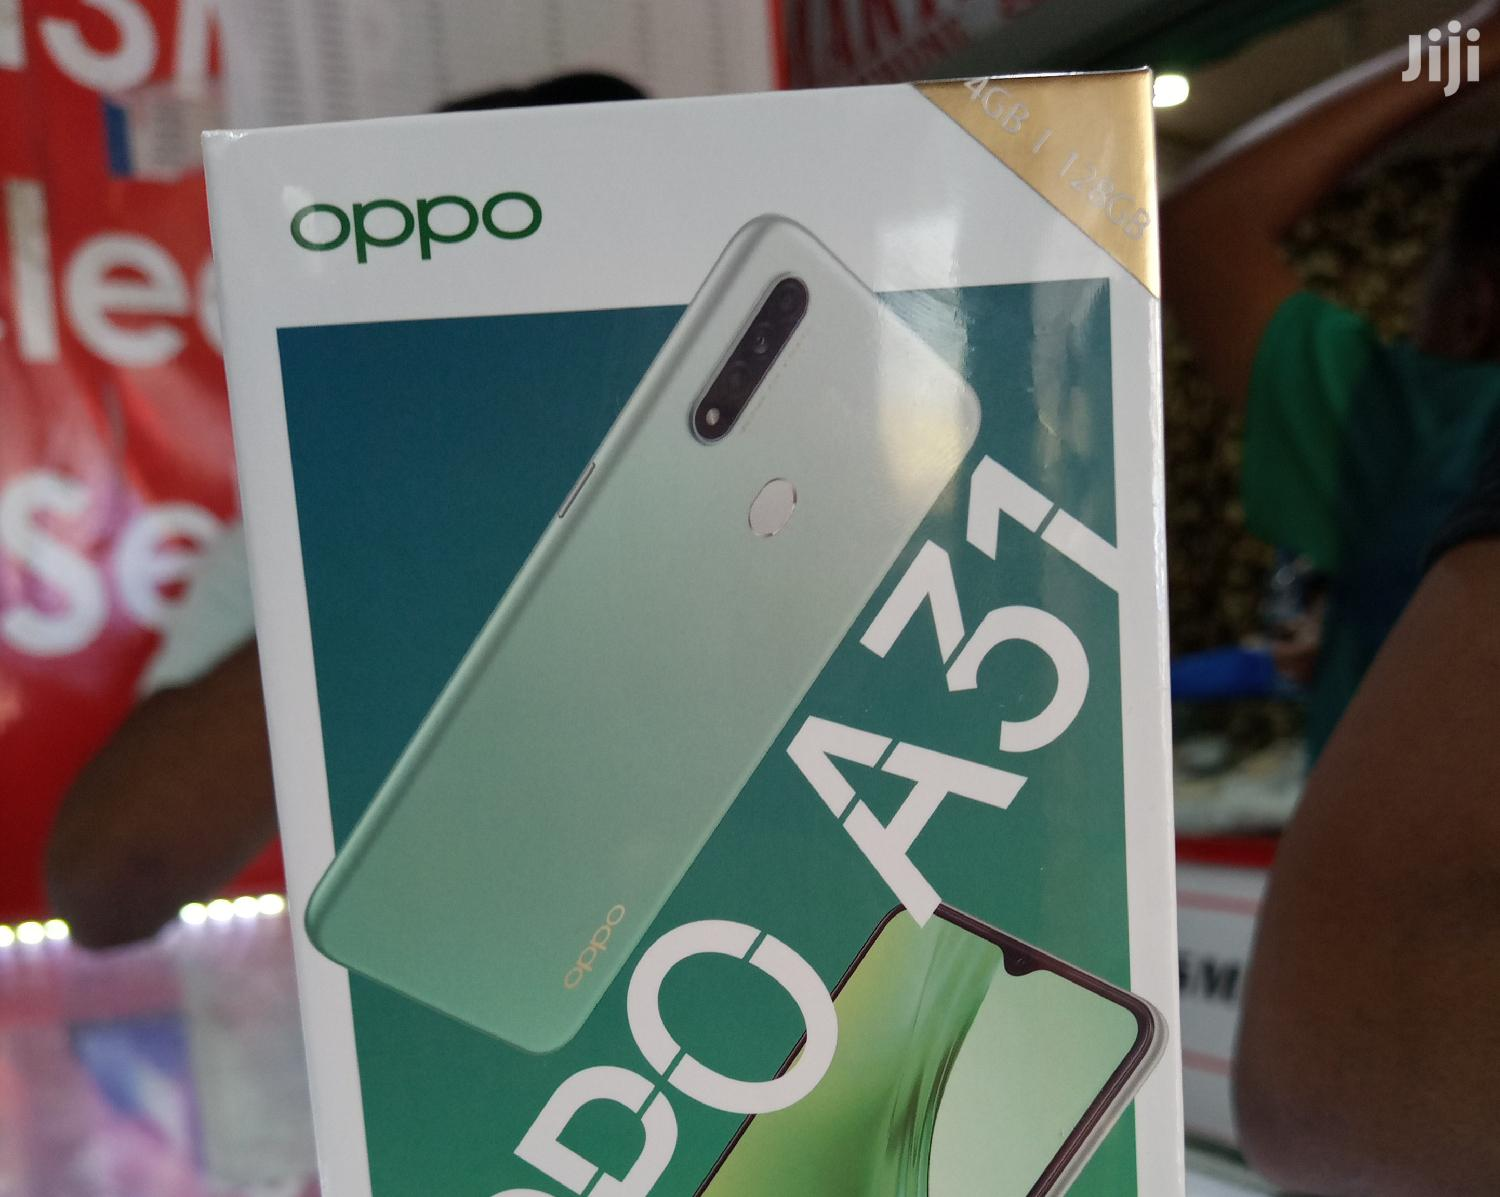 New Oppo A31 64 GB Black | Mobile Phones for sale in Ilala, Dar es Salaam, Tanzania